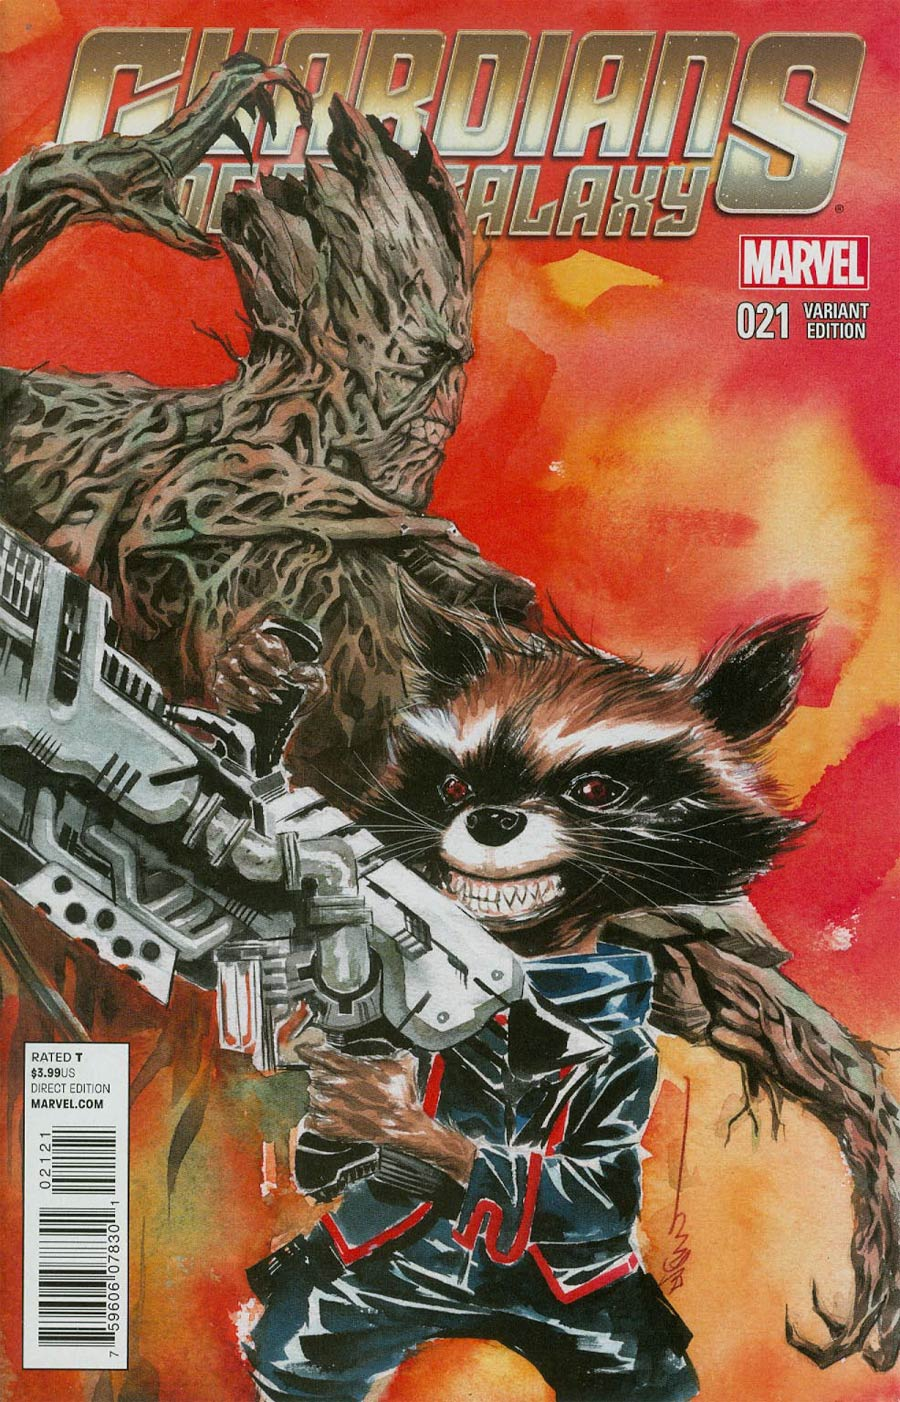 Guardians Of The Galaxy Vol 3 #21 Cover B Variant Rocket Raccoon & Groot Cover